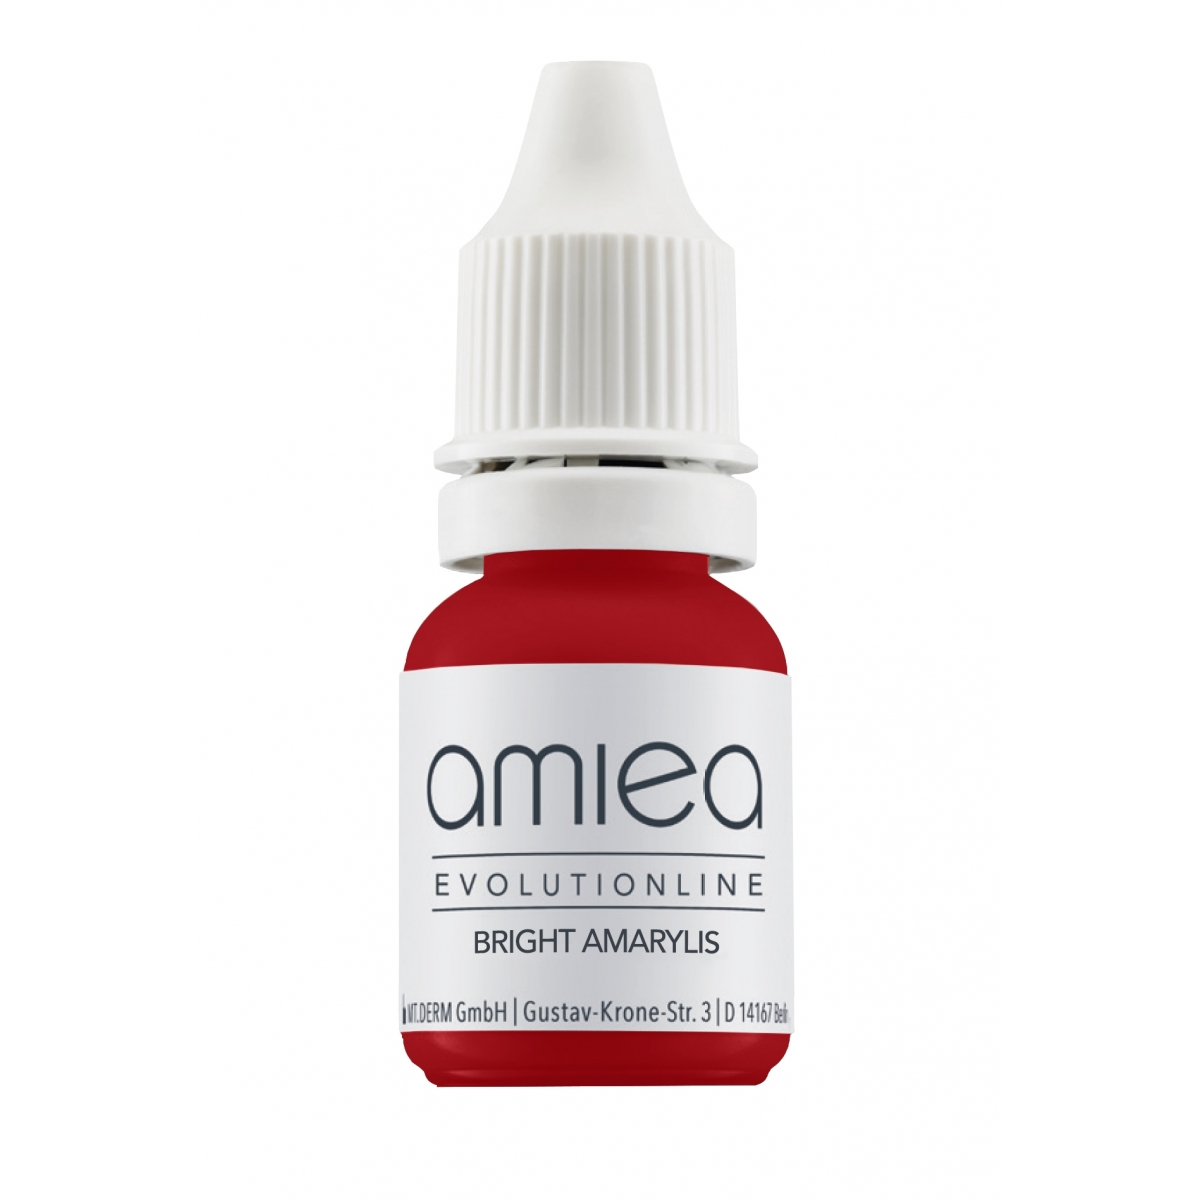 EVOLUTION LINE (10ml) - PIGMENT BRIGHT AMARYLIS EVOLUTIONLINE AMIEA (10 ml)